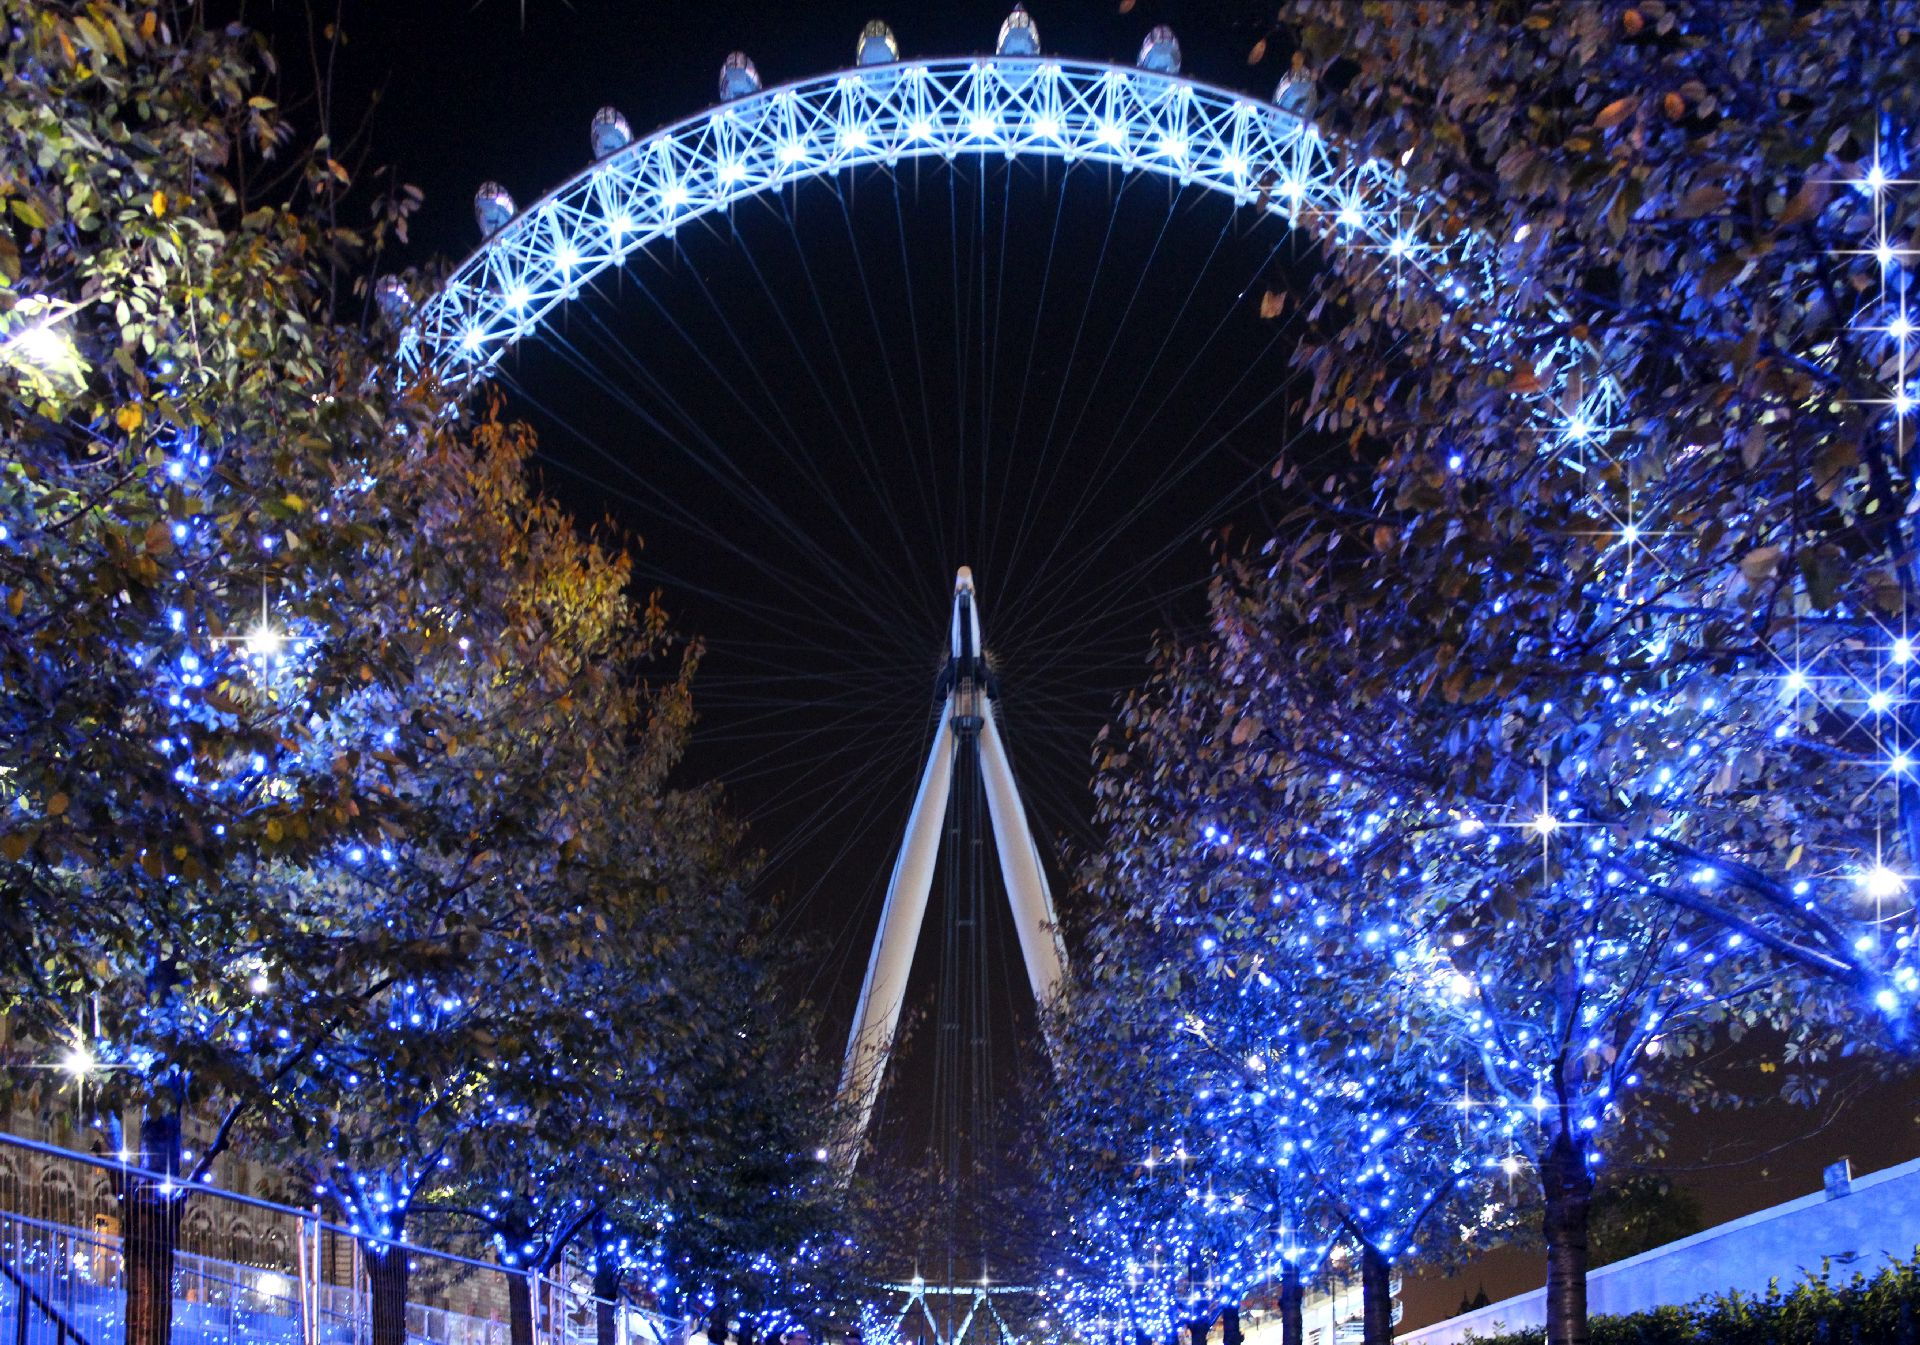 2015 By Stephen Comments Off on London Eye View HD Wallpapers 1920x1345